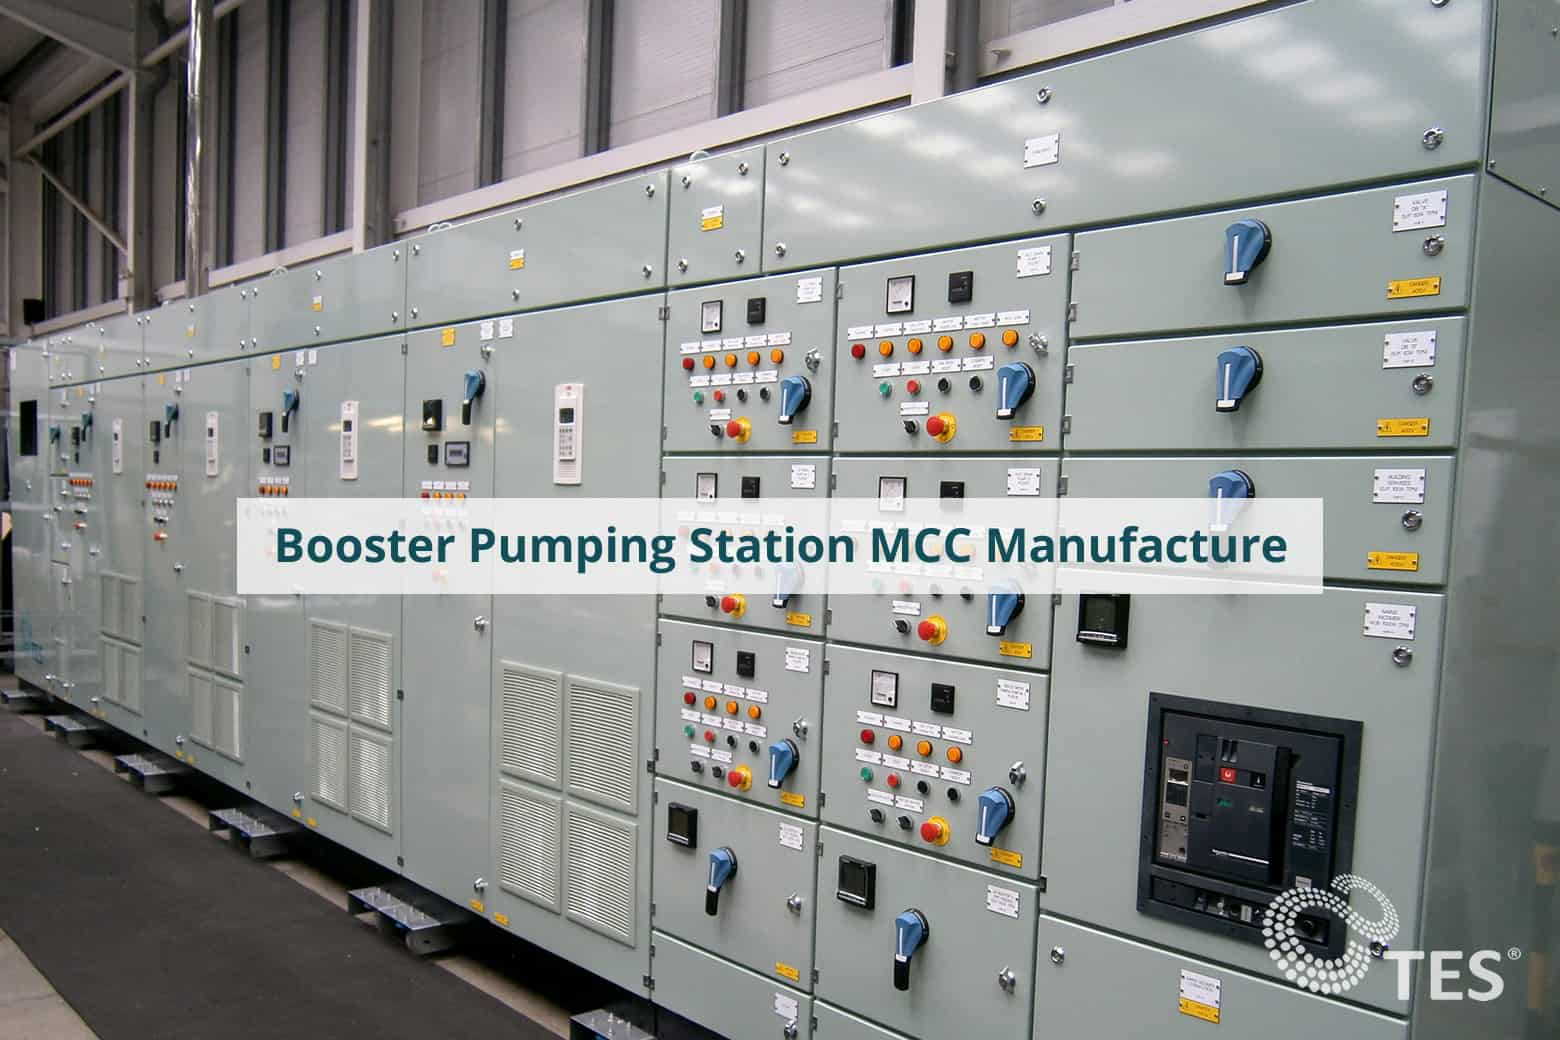 Booster Pumping Station MCC Manufacture